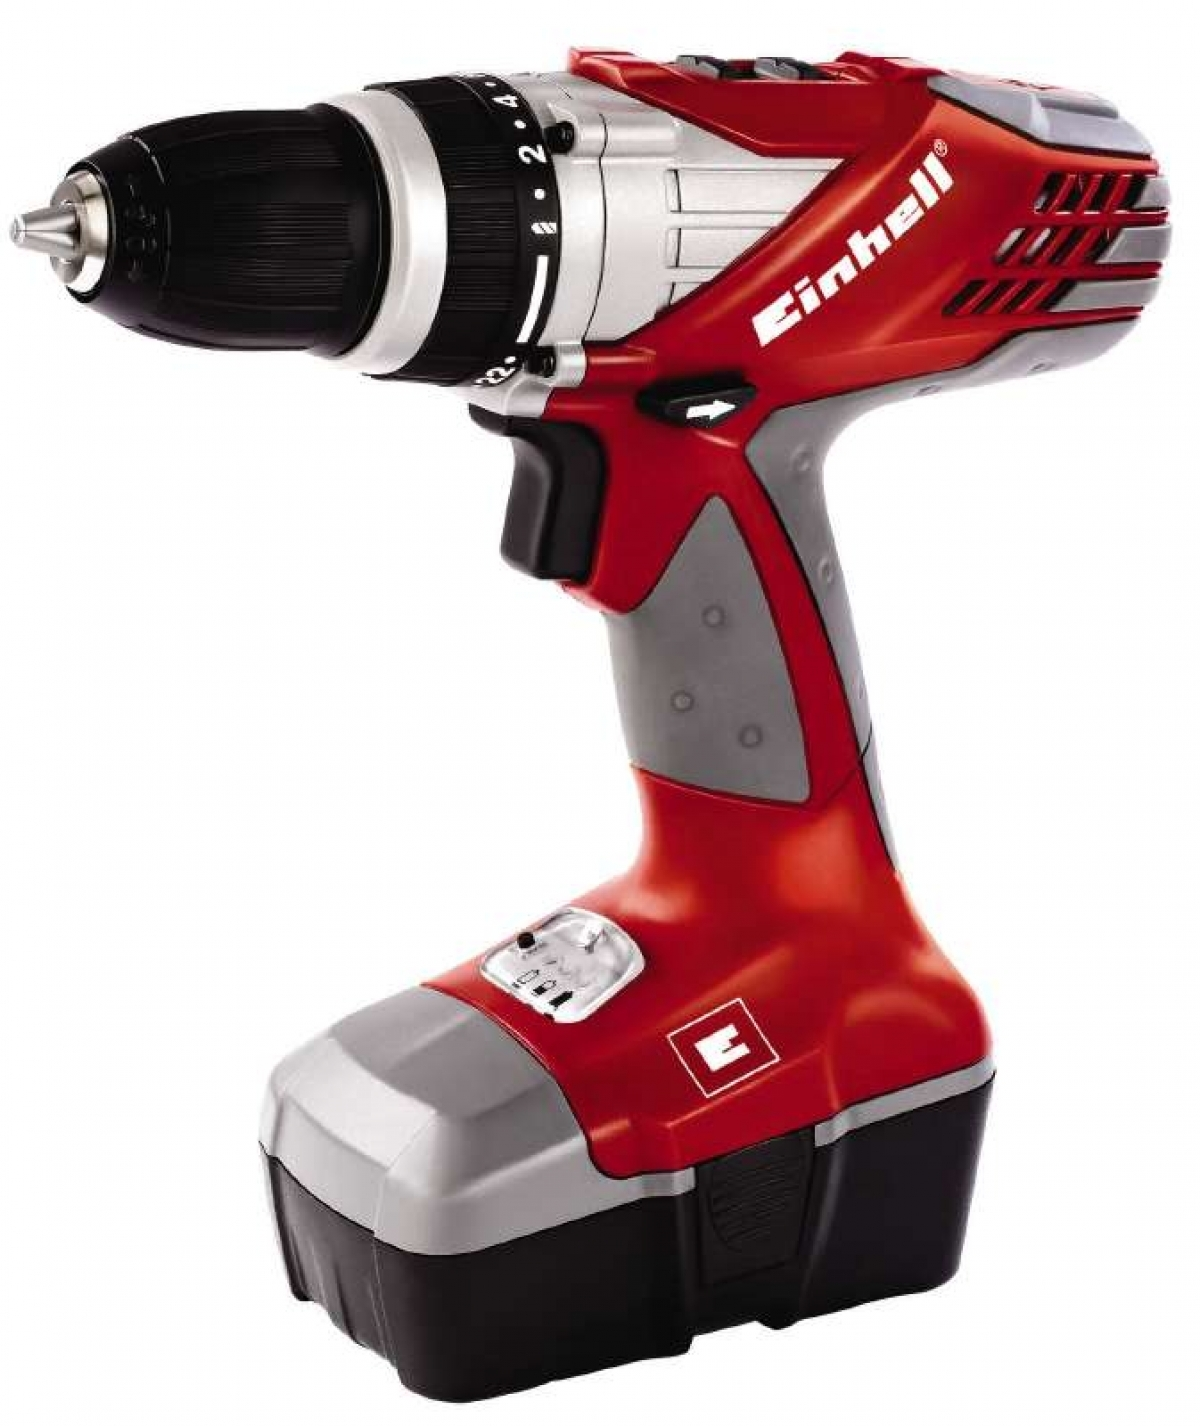 einhell 18v cordless drill driver my power tools. Black Bedroom Furniture Sets. Home Design Ideas